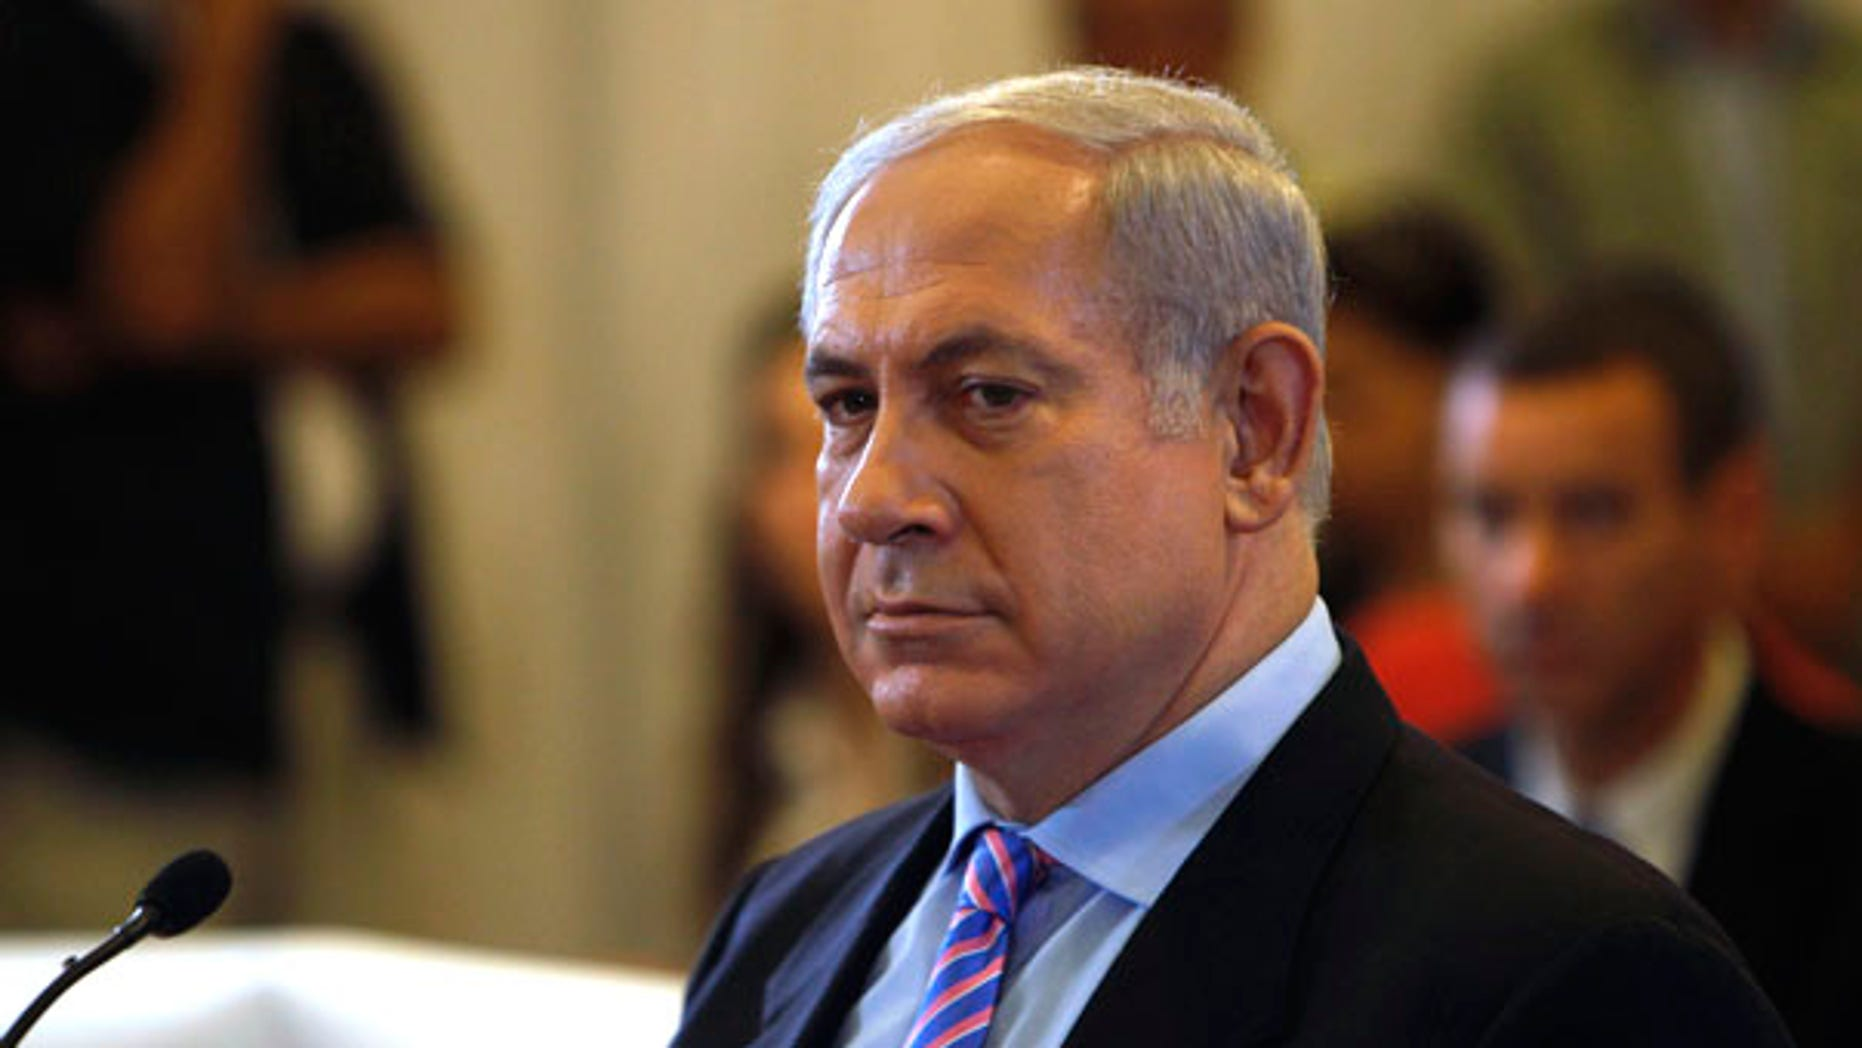 Israel's Prime Minister Benjamin Netanyahu sits before testifying in front of  a state-appointed inquiry commission into the Israeli naval raid on a Gaza aid flotilla, in Jerusalem, Monday, Aug. 9, 2010. Netanyahu testified Monday before his country's inquiry commission into the bloodshed aboard a Turkish ship that tried to break the Gaza blockade in May 2010, defending Israel's actions and suggesting Turkey had been seeking a confrontation. (AP Photo/Ronen Zvulun, Pool)